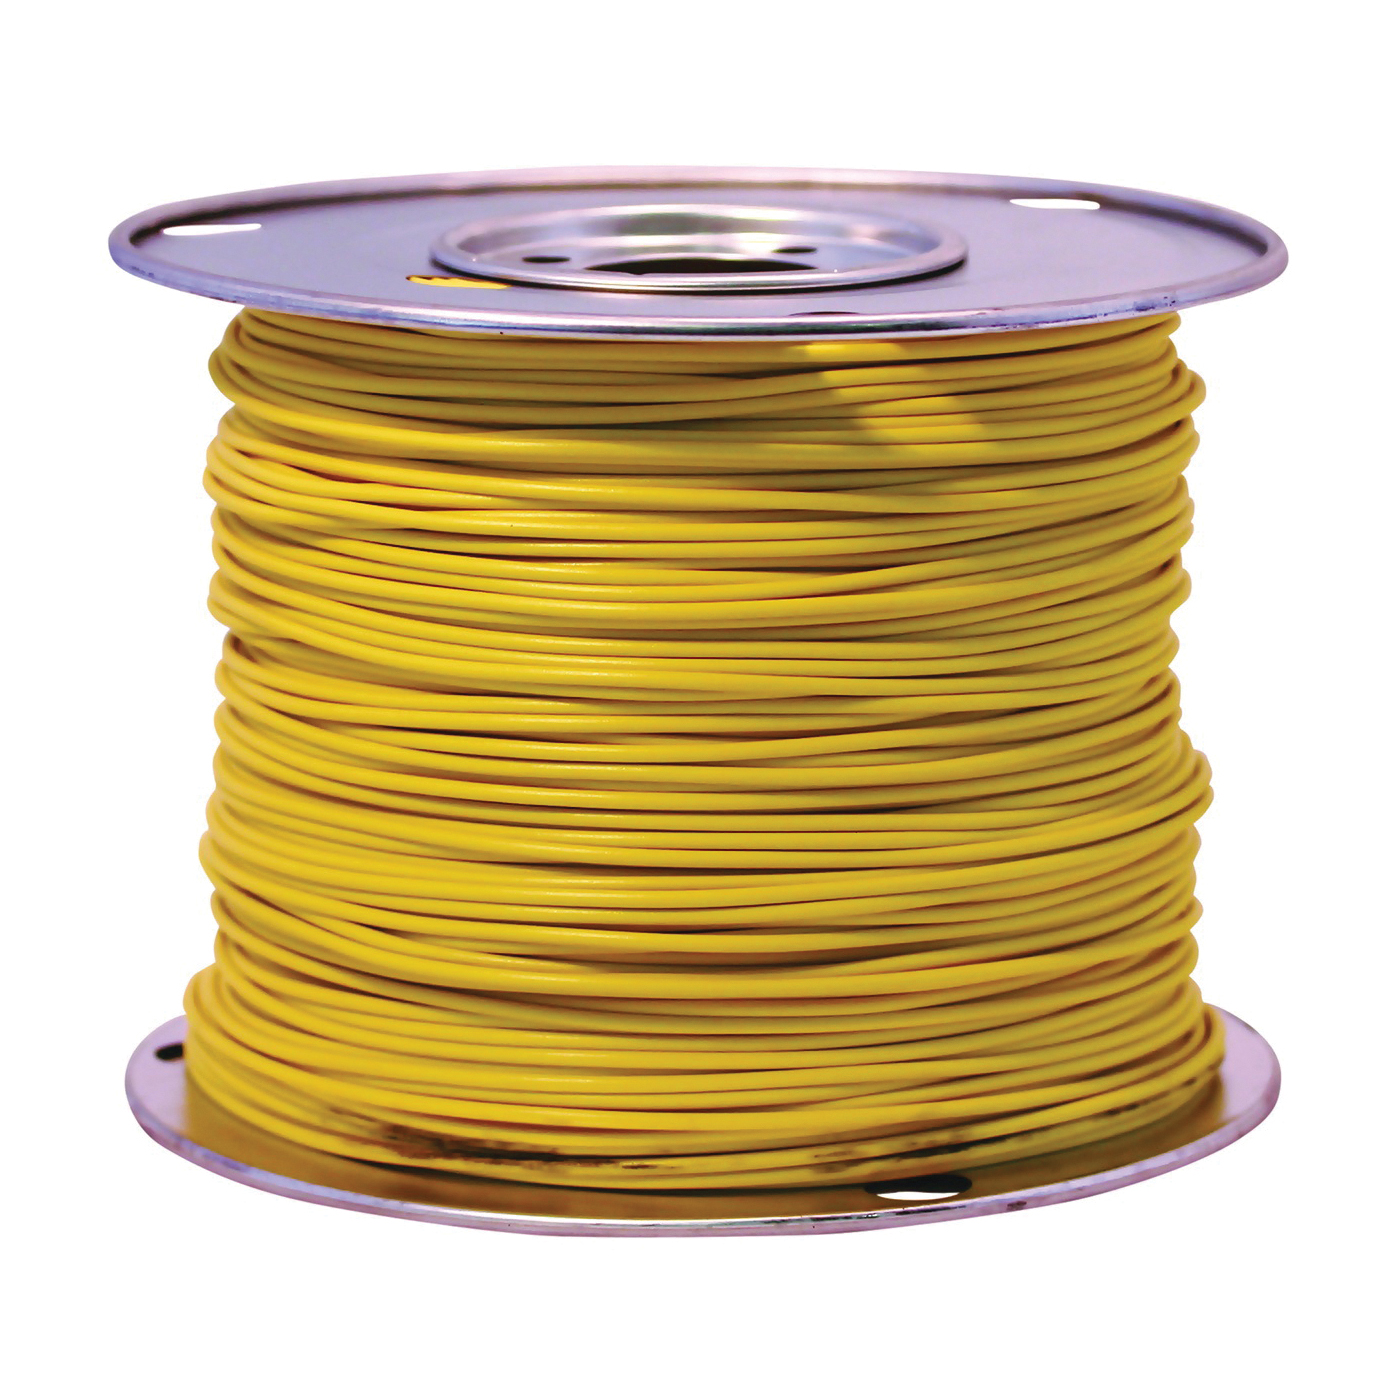 Picture of CCI 55671723 Primary Wire, 12 AWG Wire, 1 -Conductor, 60 VDC, Stranded Copper Conductor, Yellow Sheath